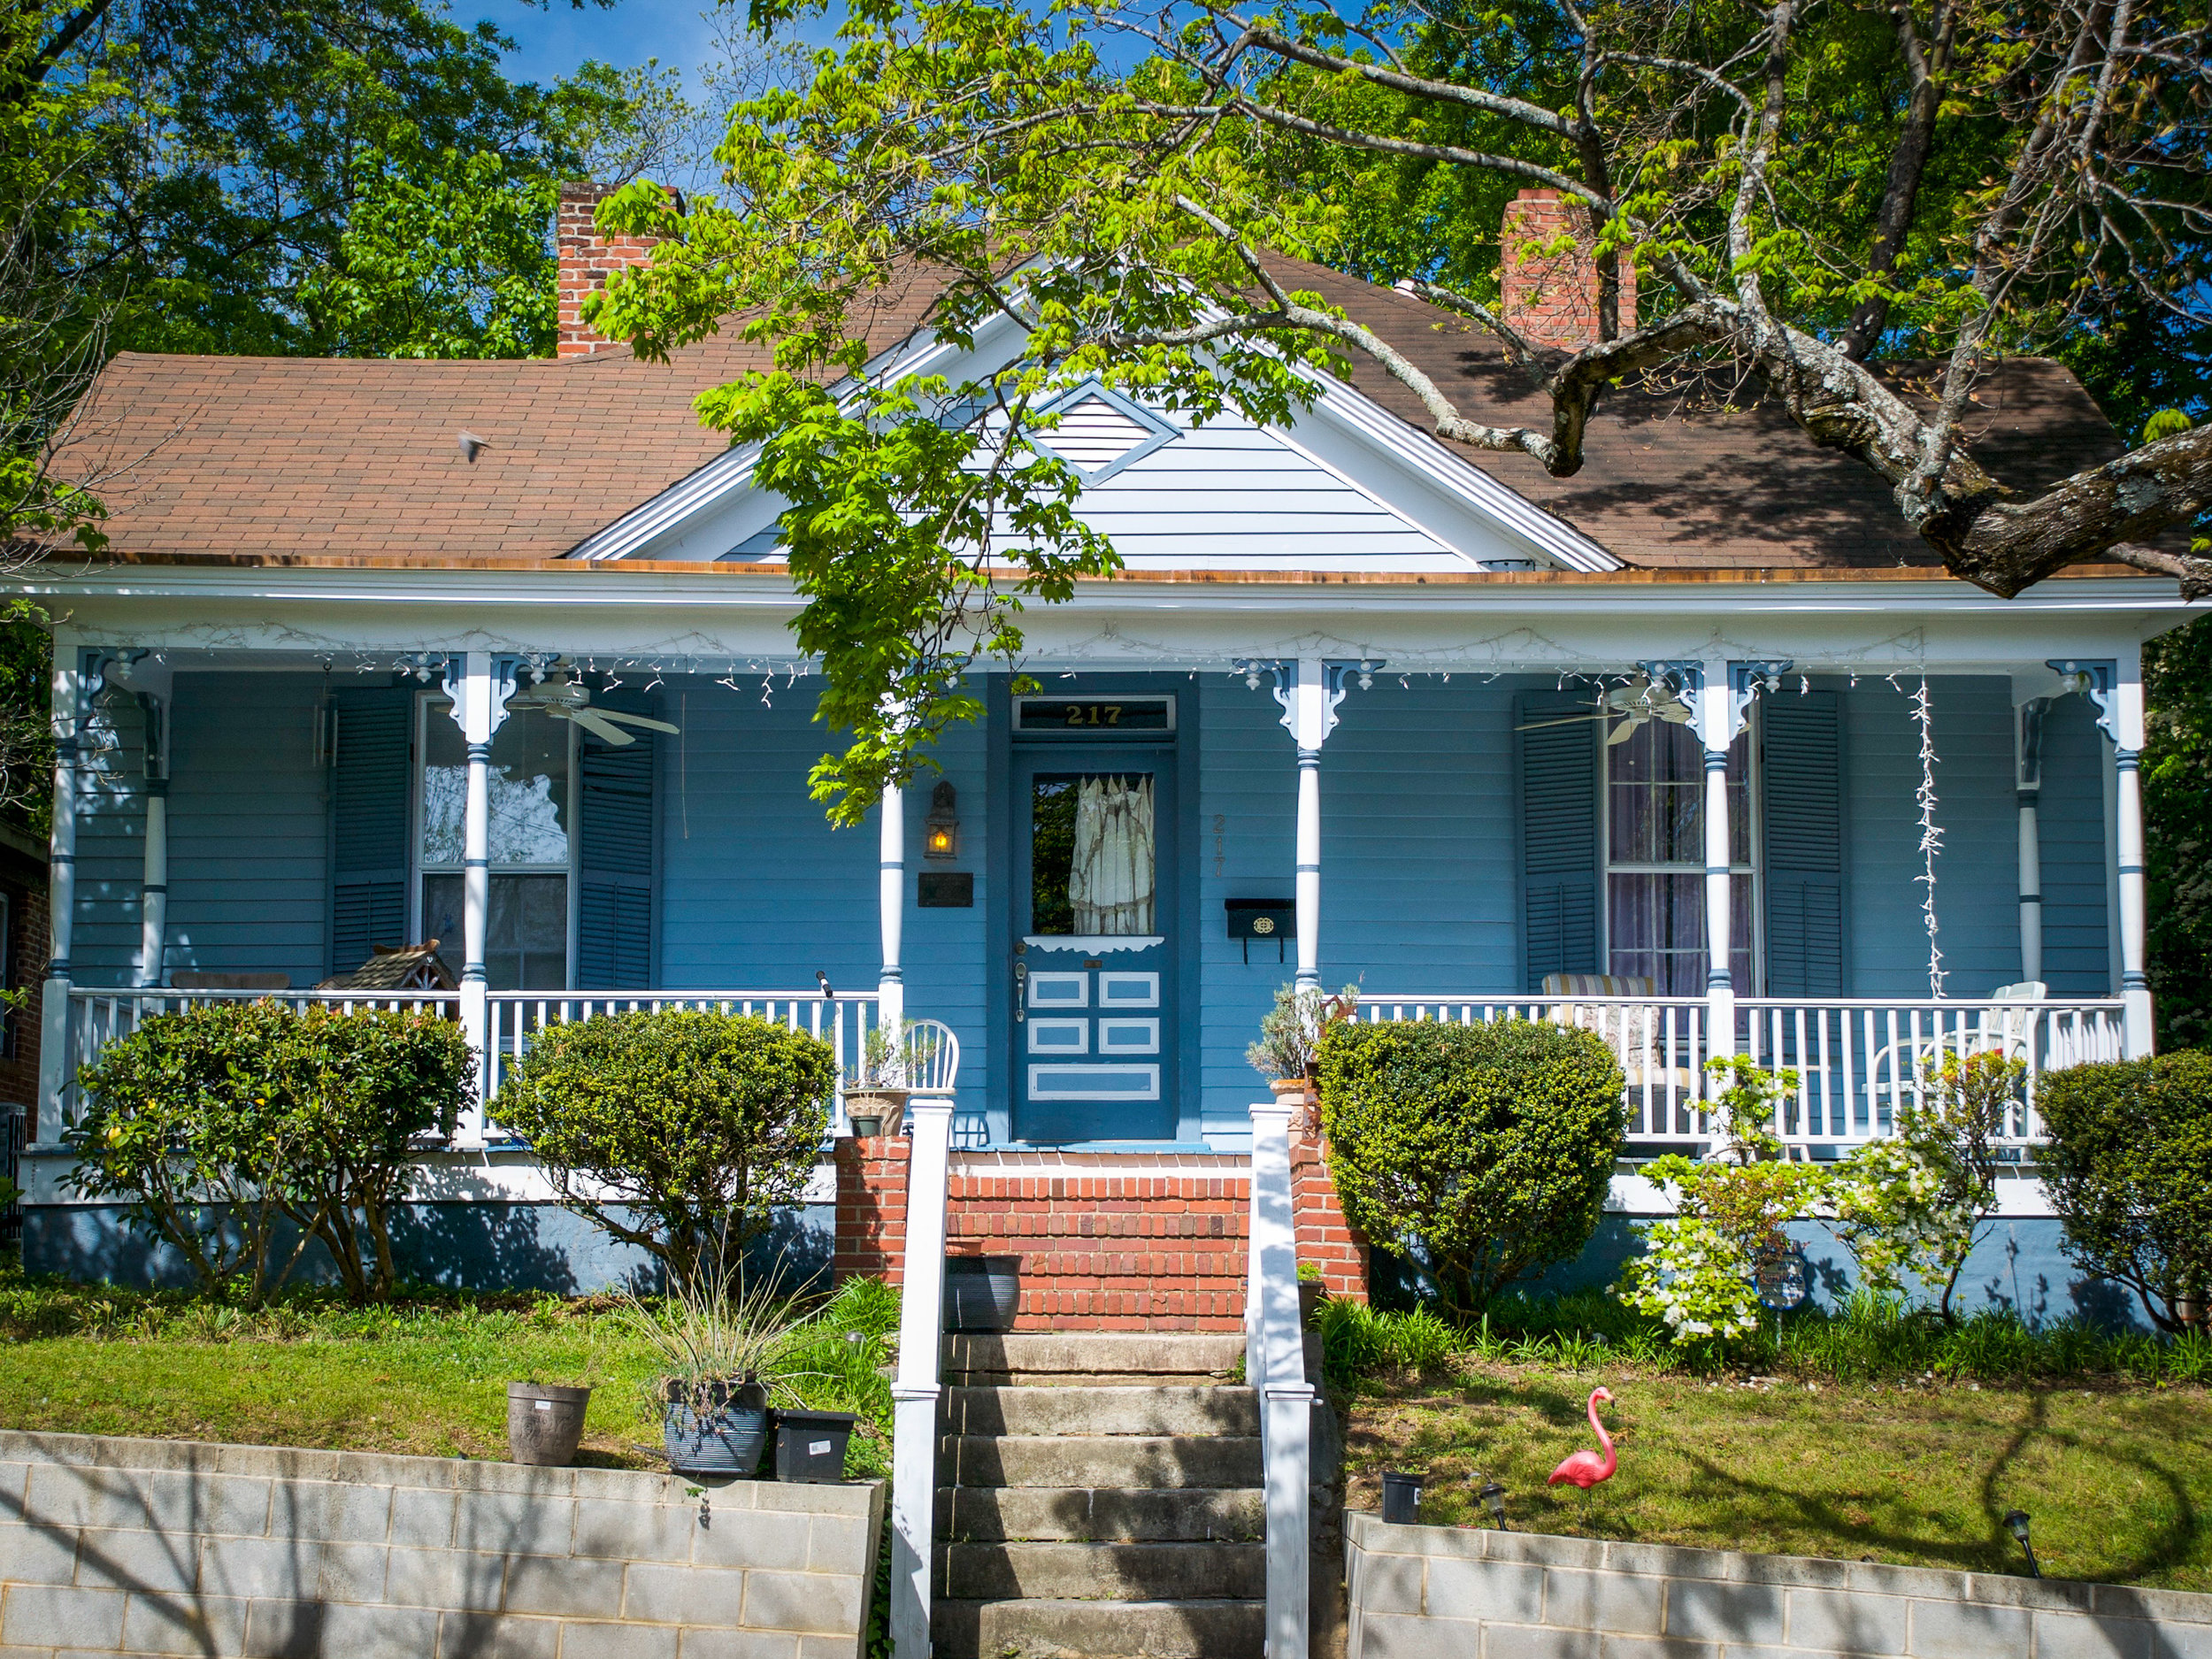 217 Linden Avenue - Purchased and renovated by the SPHO